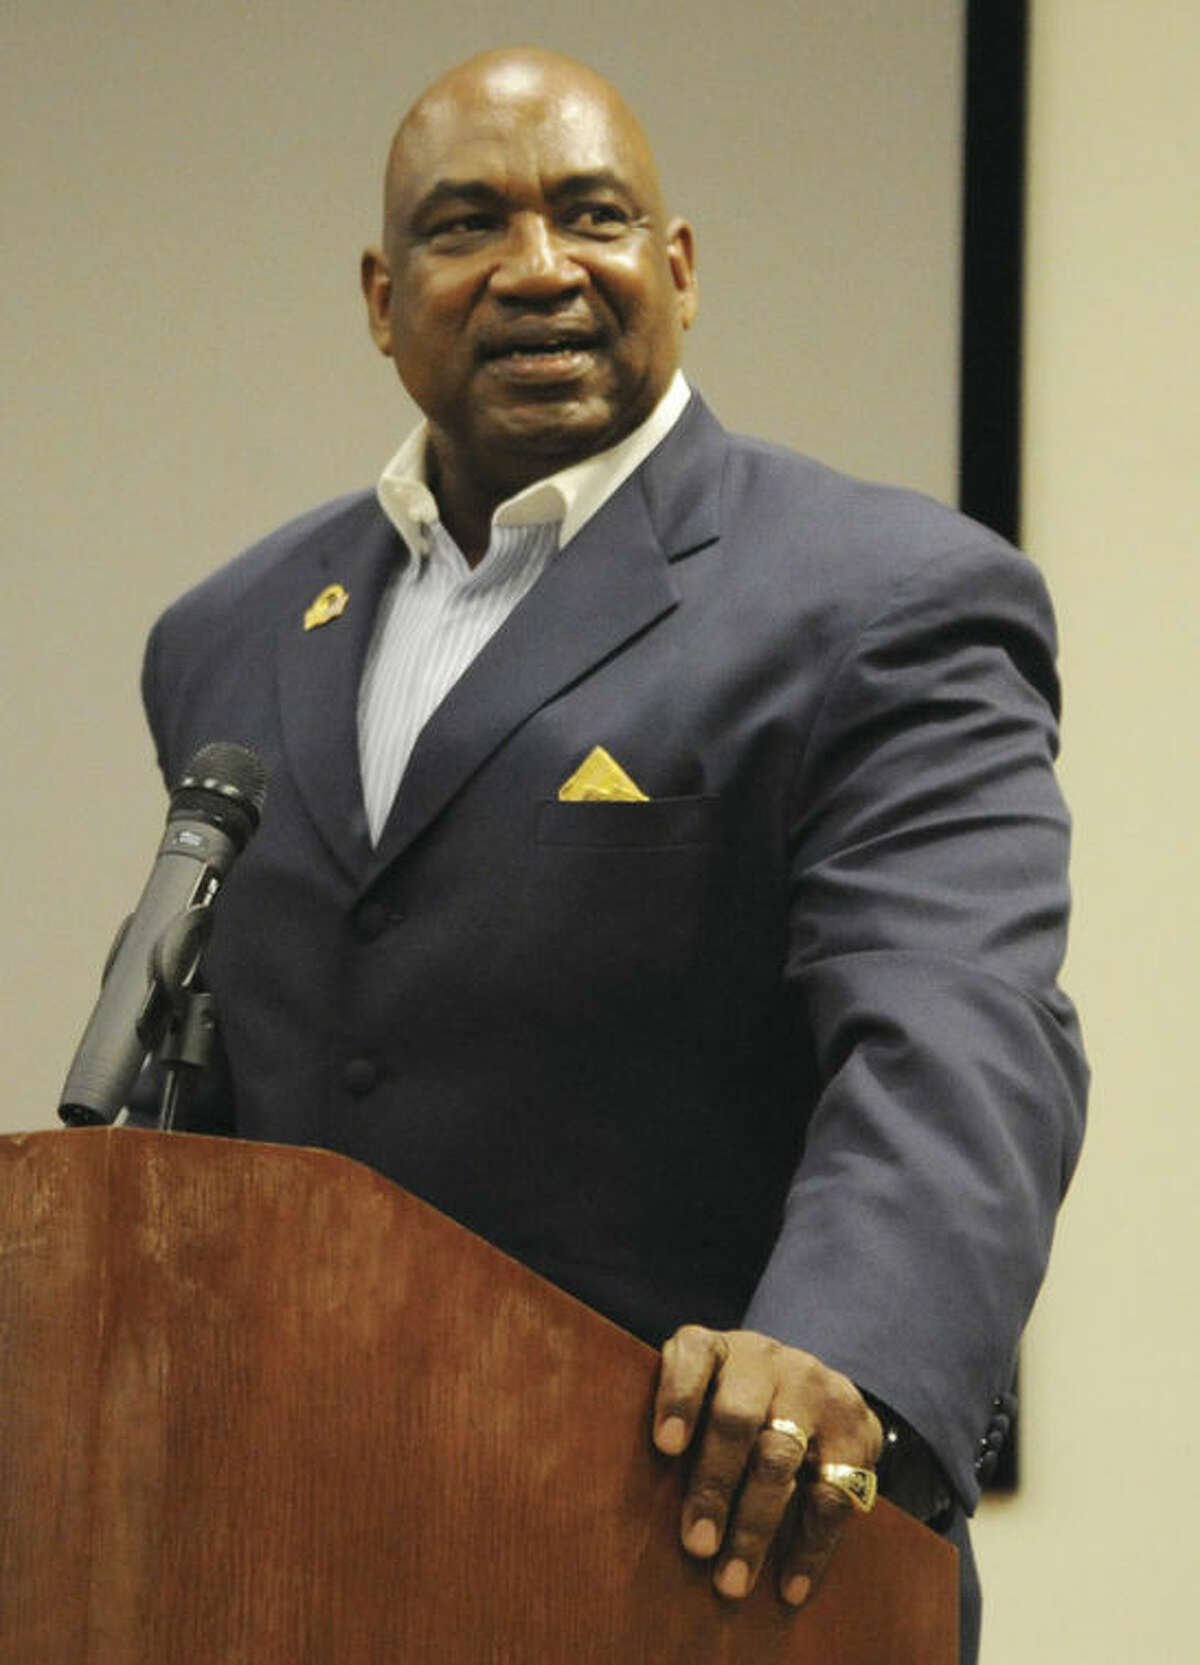 Hour photo/Matthew Vinci George Martin, a former defensive lineman for the New York Giants, addresses the crowd Tuesday night during his talk about civility on the gridiron at Stamford's Ferguson Library. Martin spent 14 years in the NFL, all with the Giants.